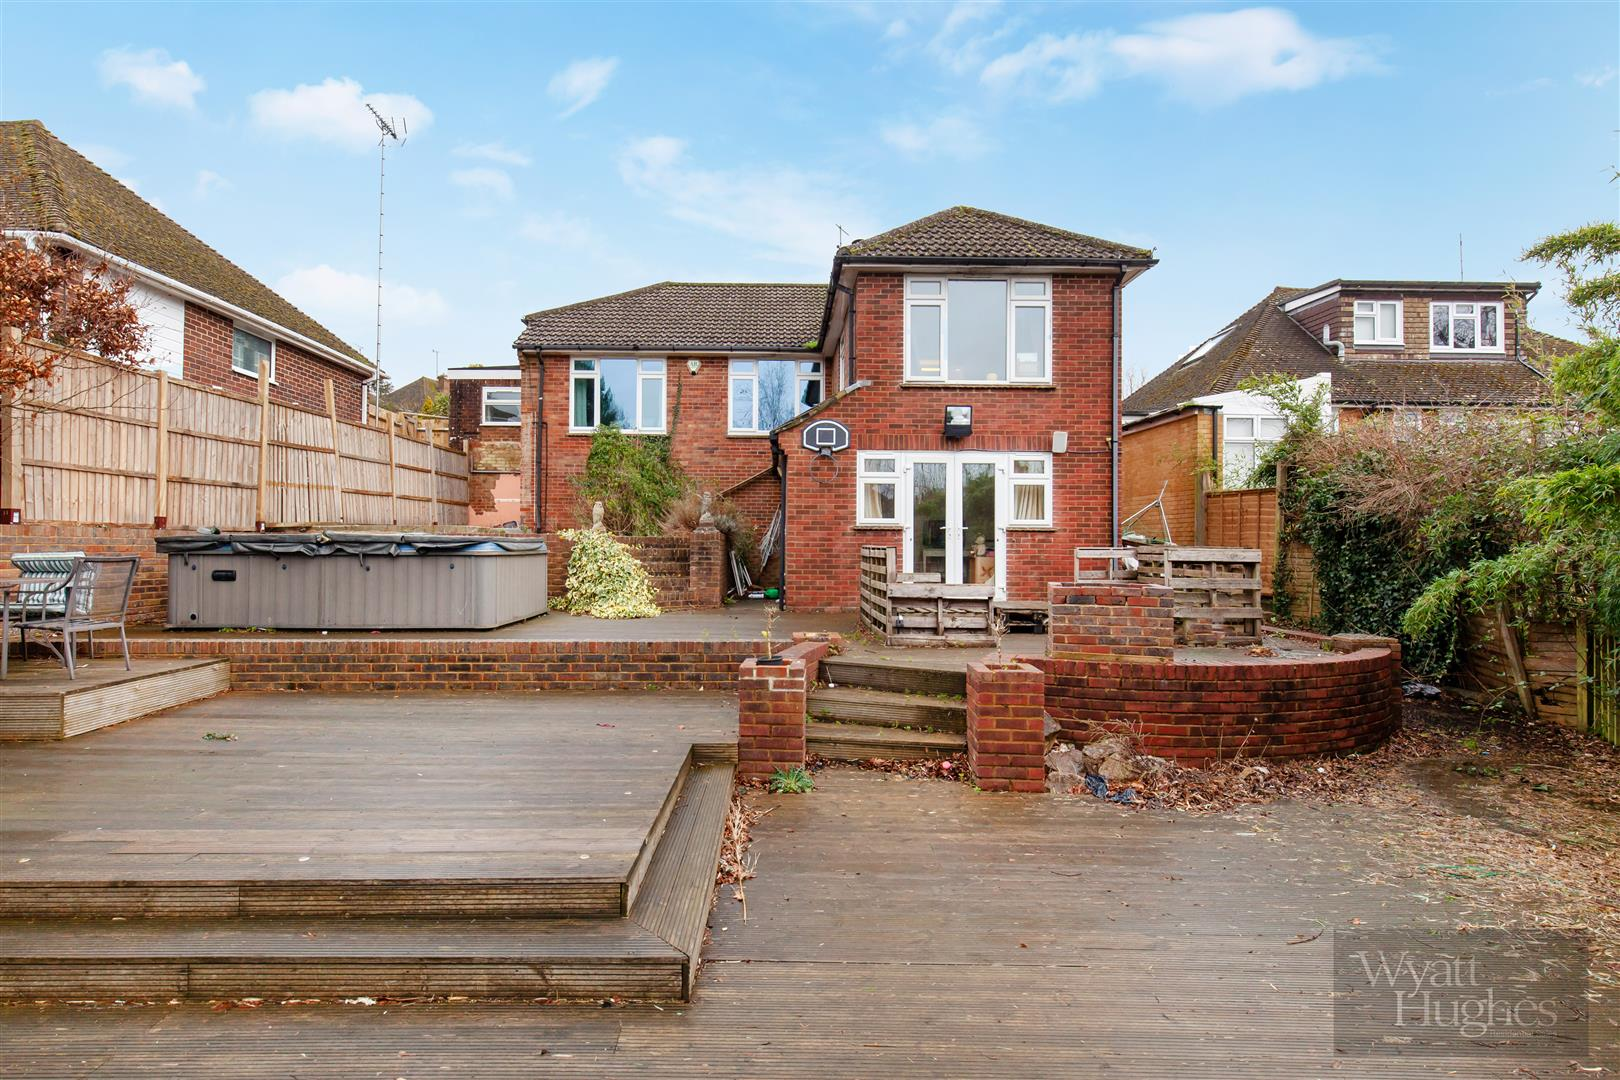 4 bed detached-bungalow for sale in Gorselands, Battle 23